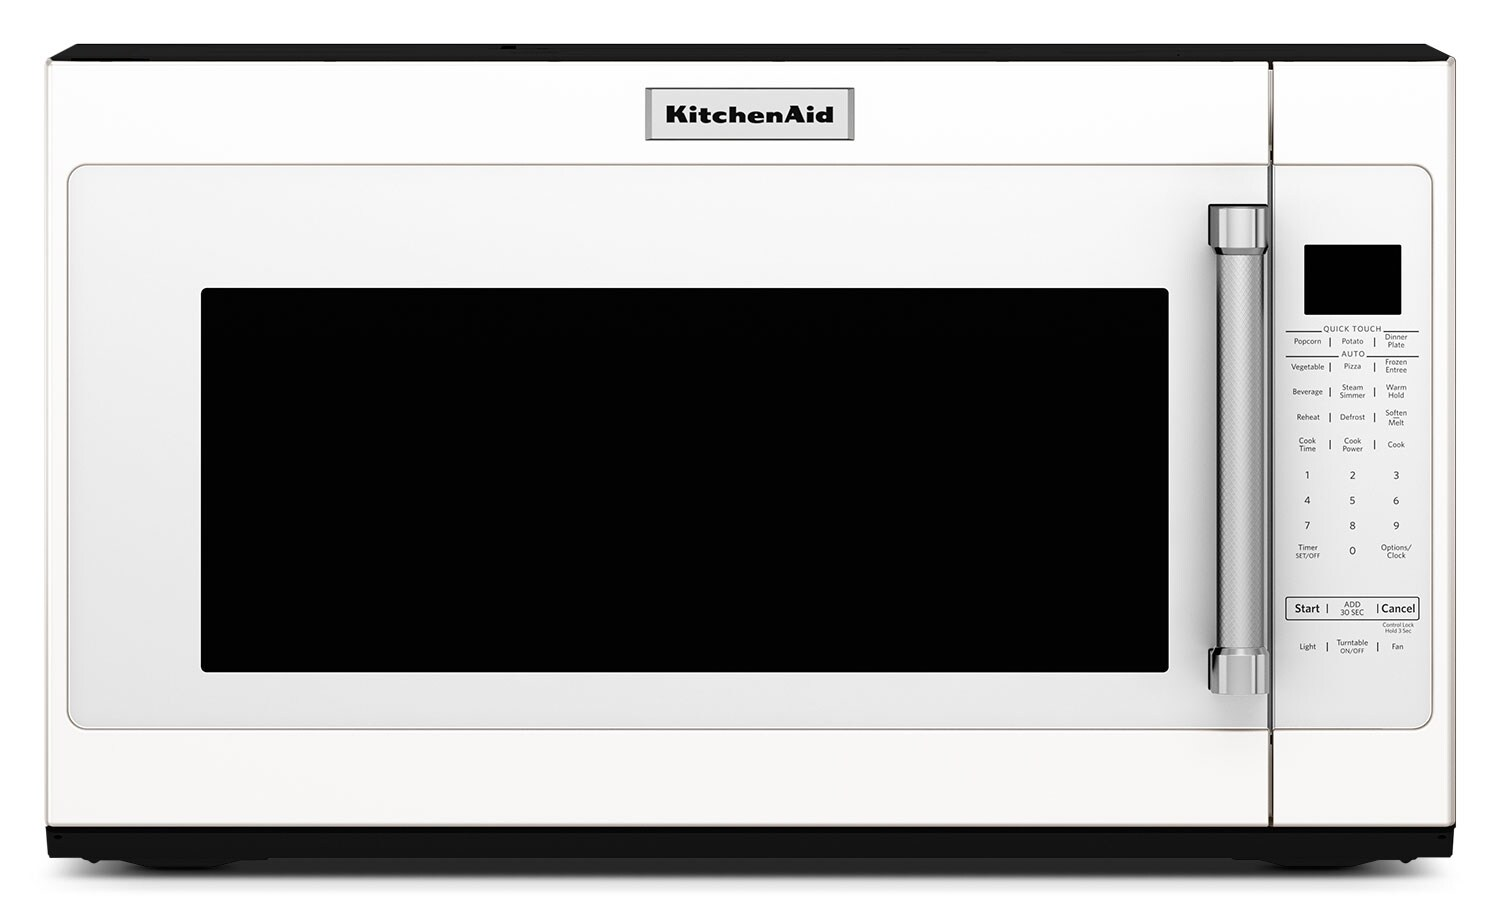 Cooking Products - KitchenAid 2.0 Cu. Ft. Over-the-Range Microwave with Sensor Functions - White